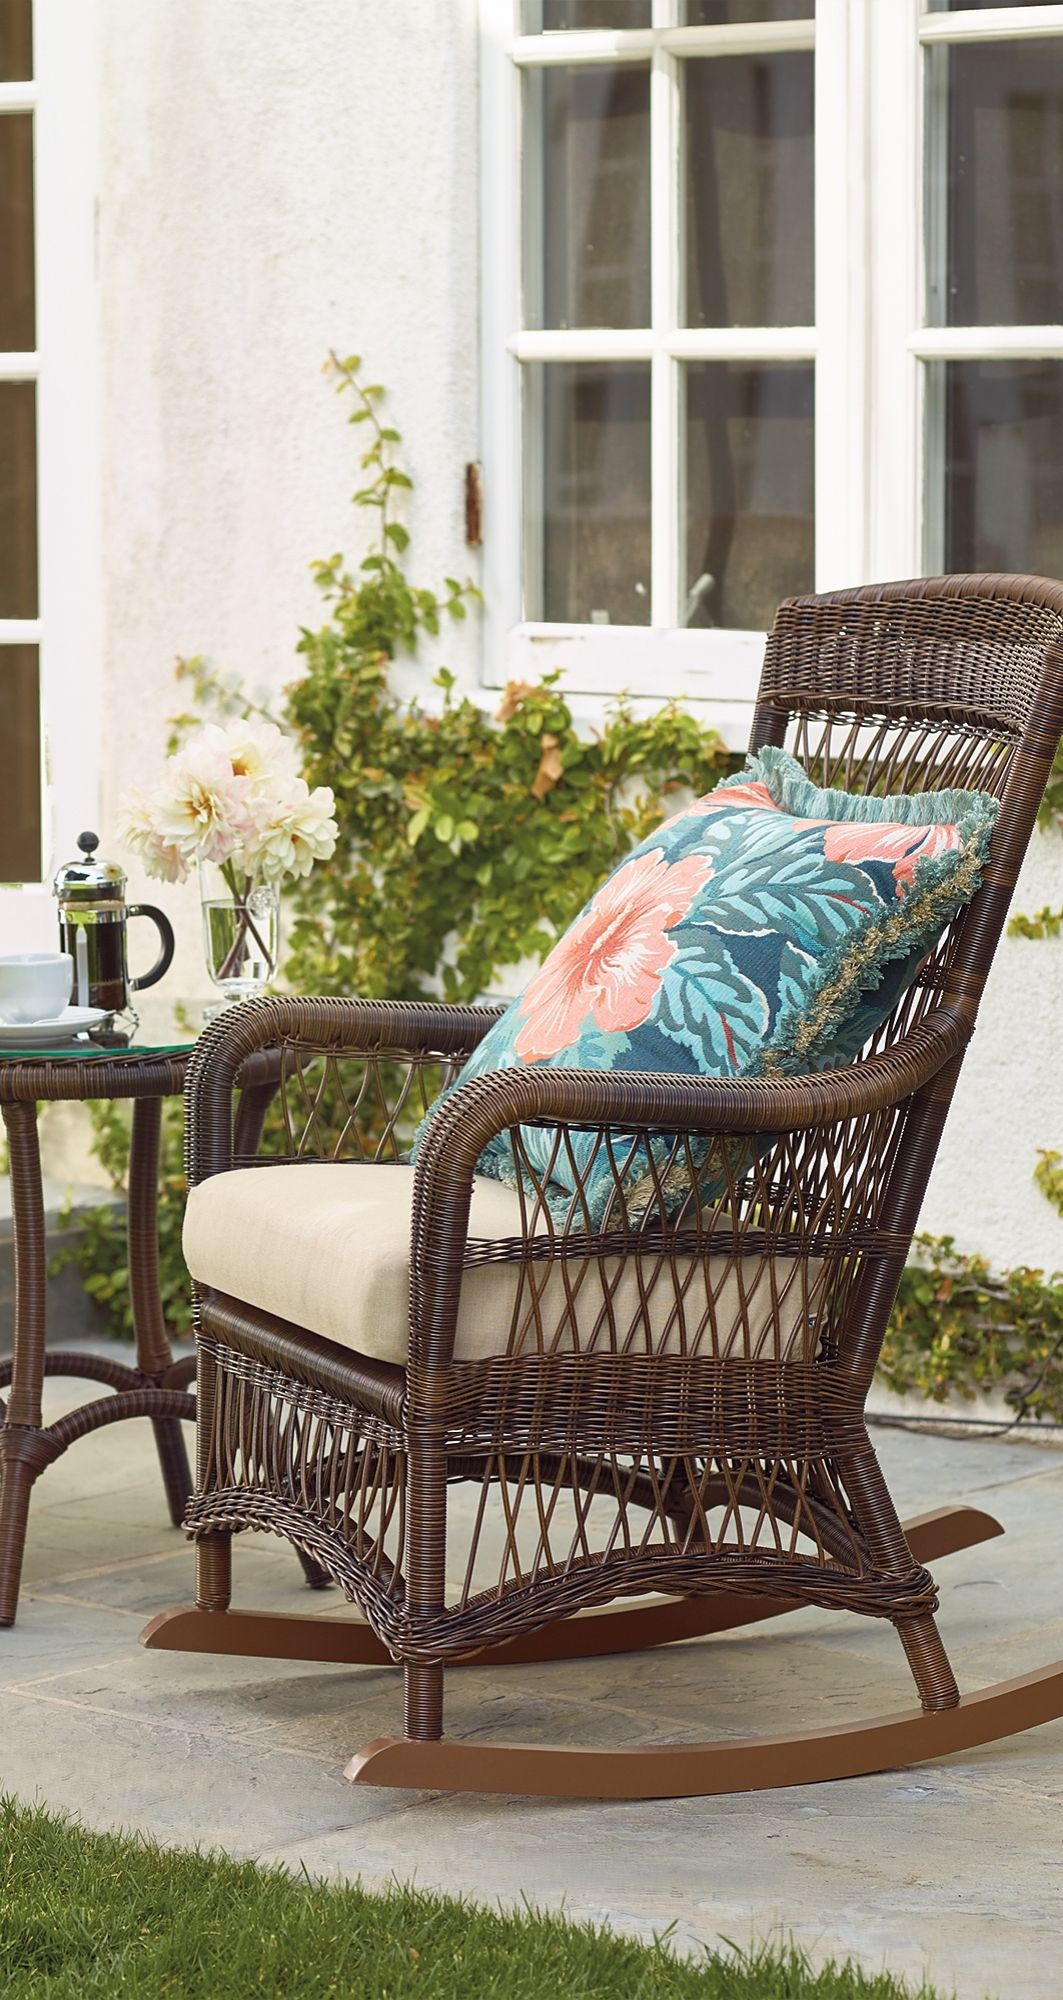 As soon as our beautifully woven Providence Wicker Rocker arrives